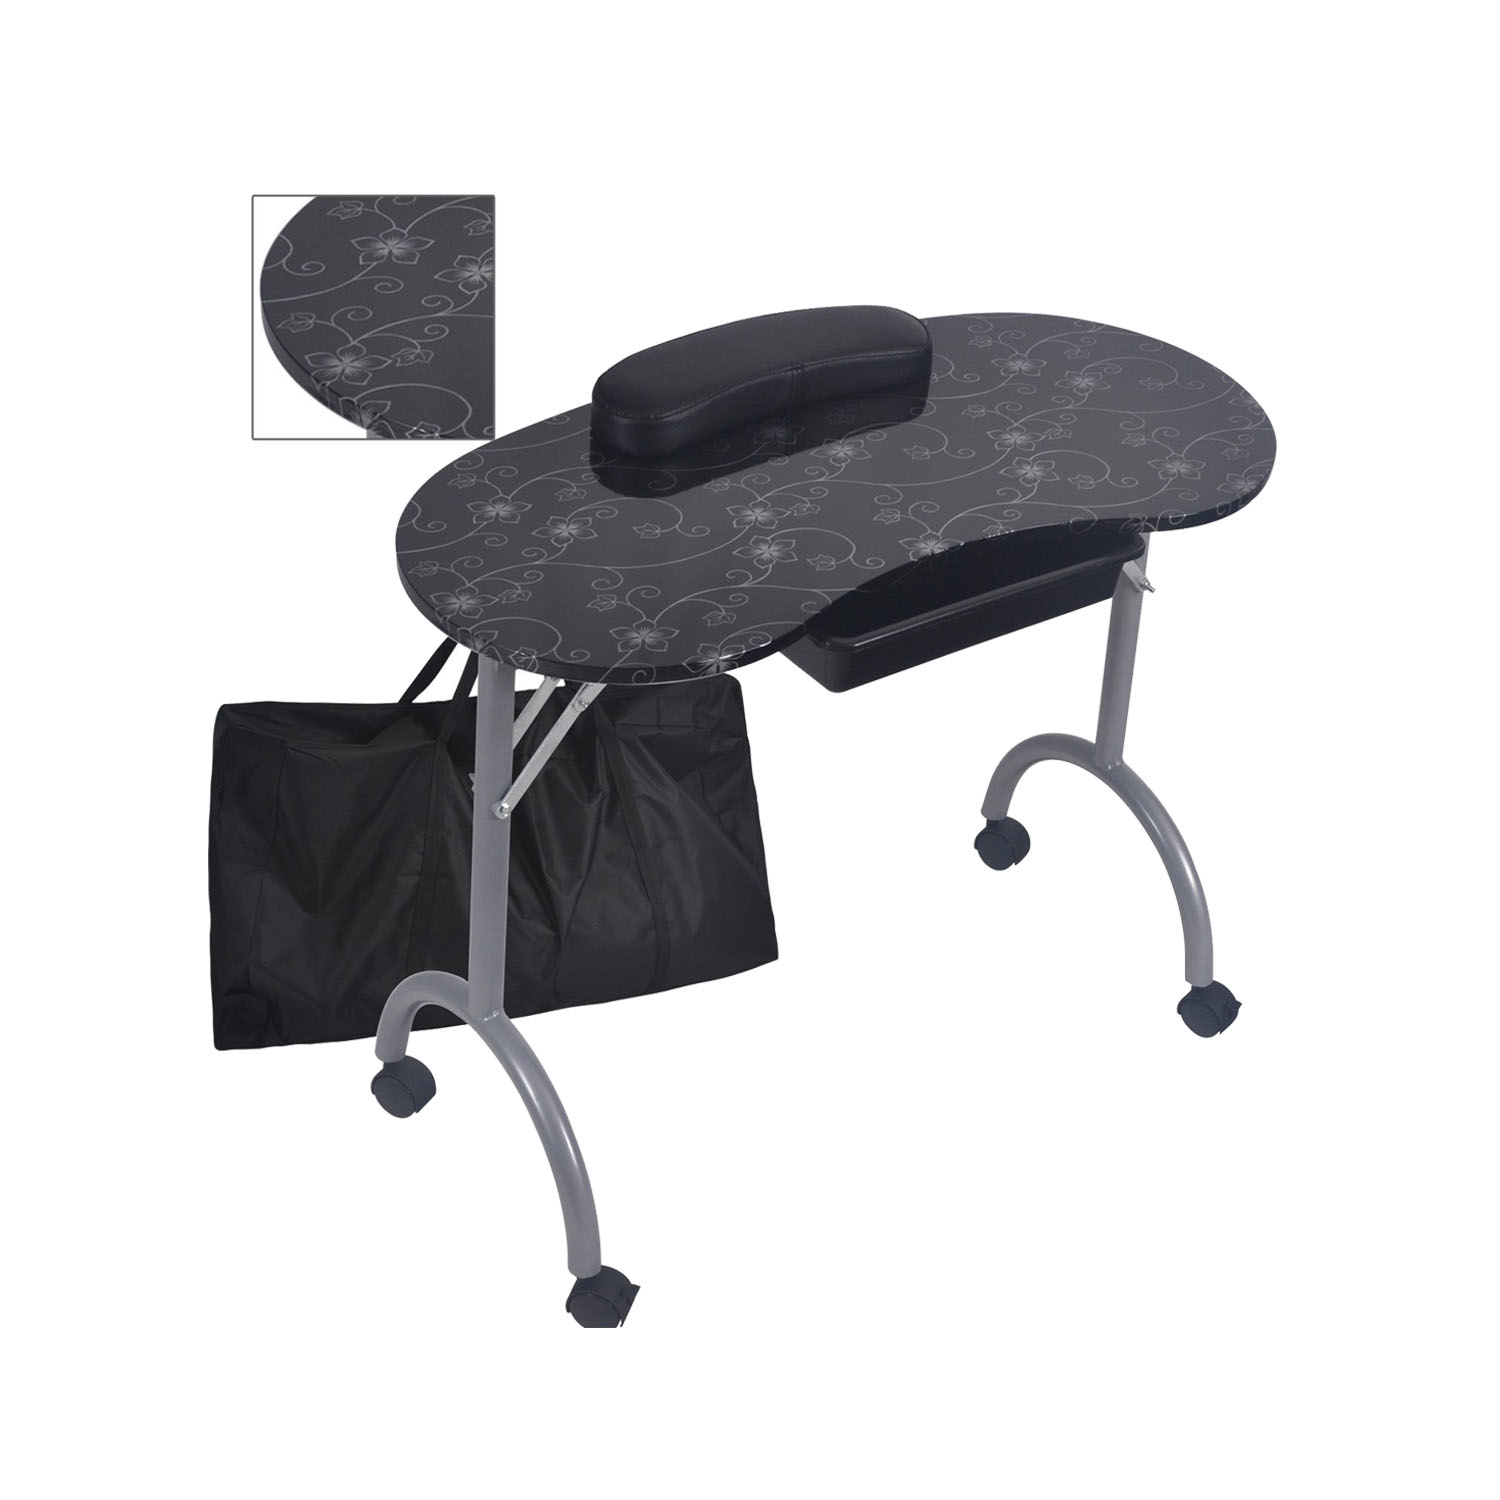 shop tables salon stone beauty table da for manicure davinci sale comfortel vinci